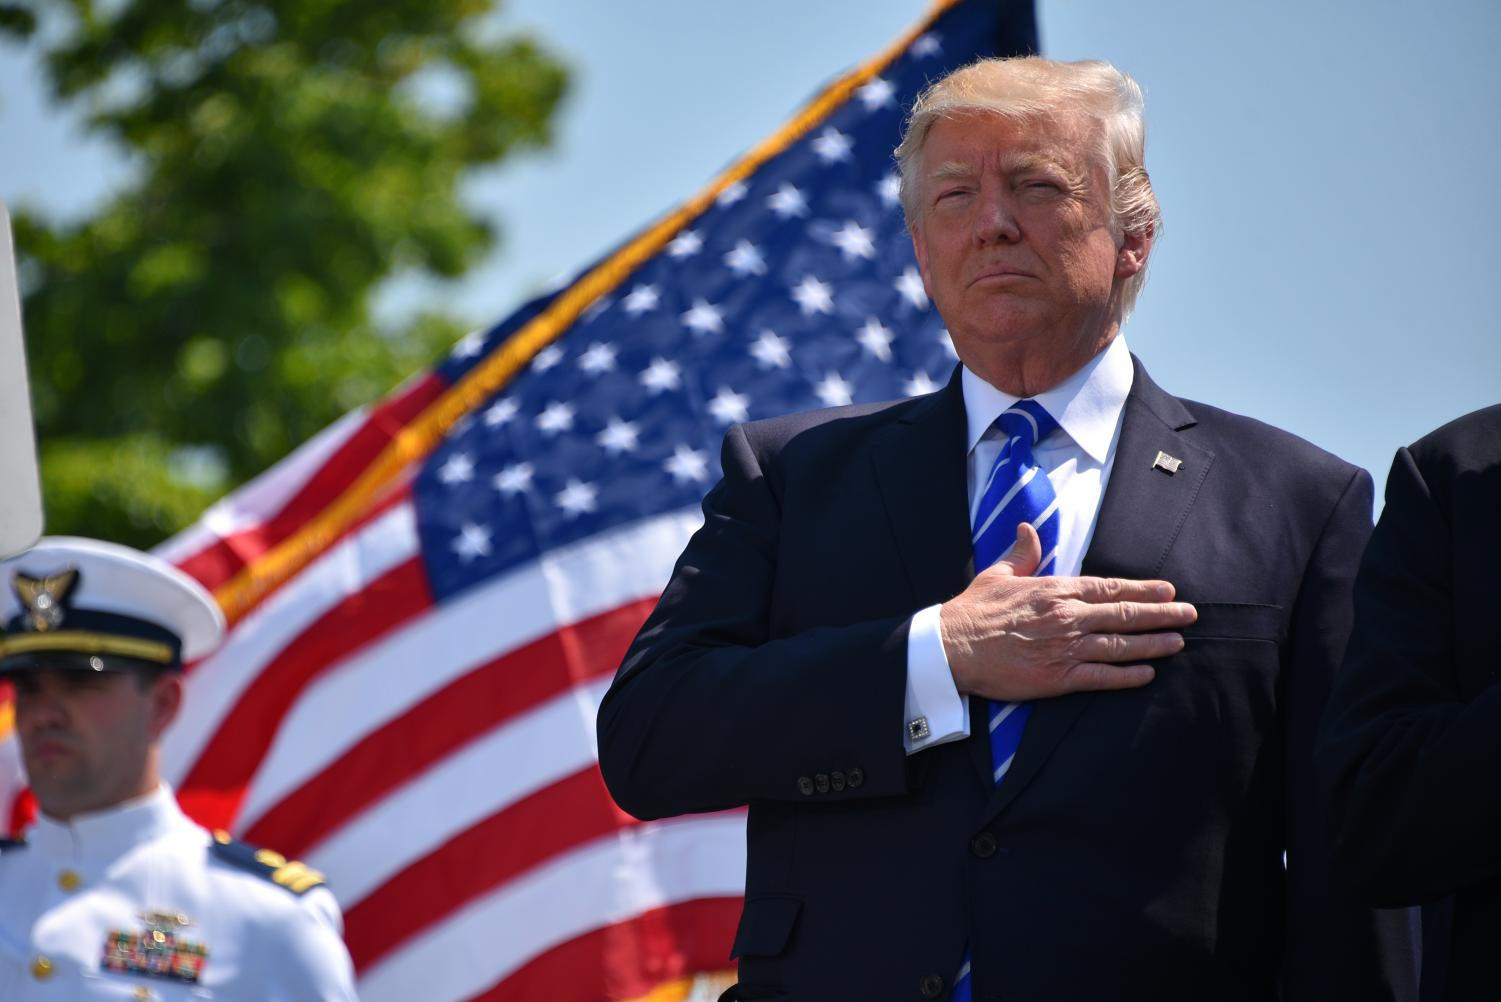 President Donald Trump, pictured holding his right hand over his heart to respect the American flag. Trump was investigated to see if he was eligible to be impeached and removed from the presidency.